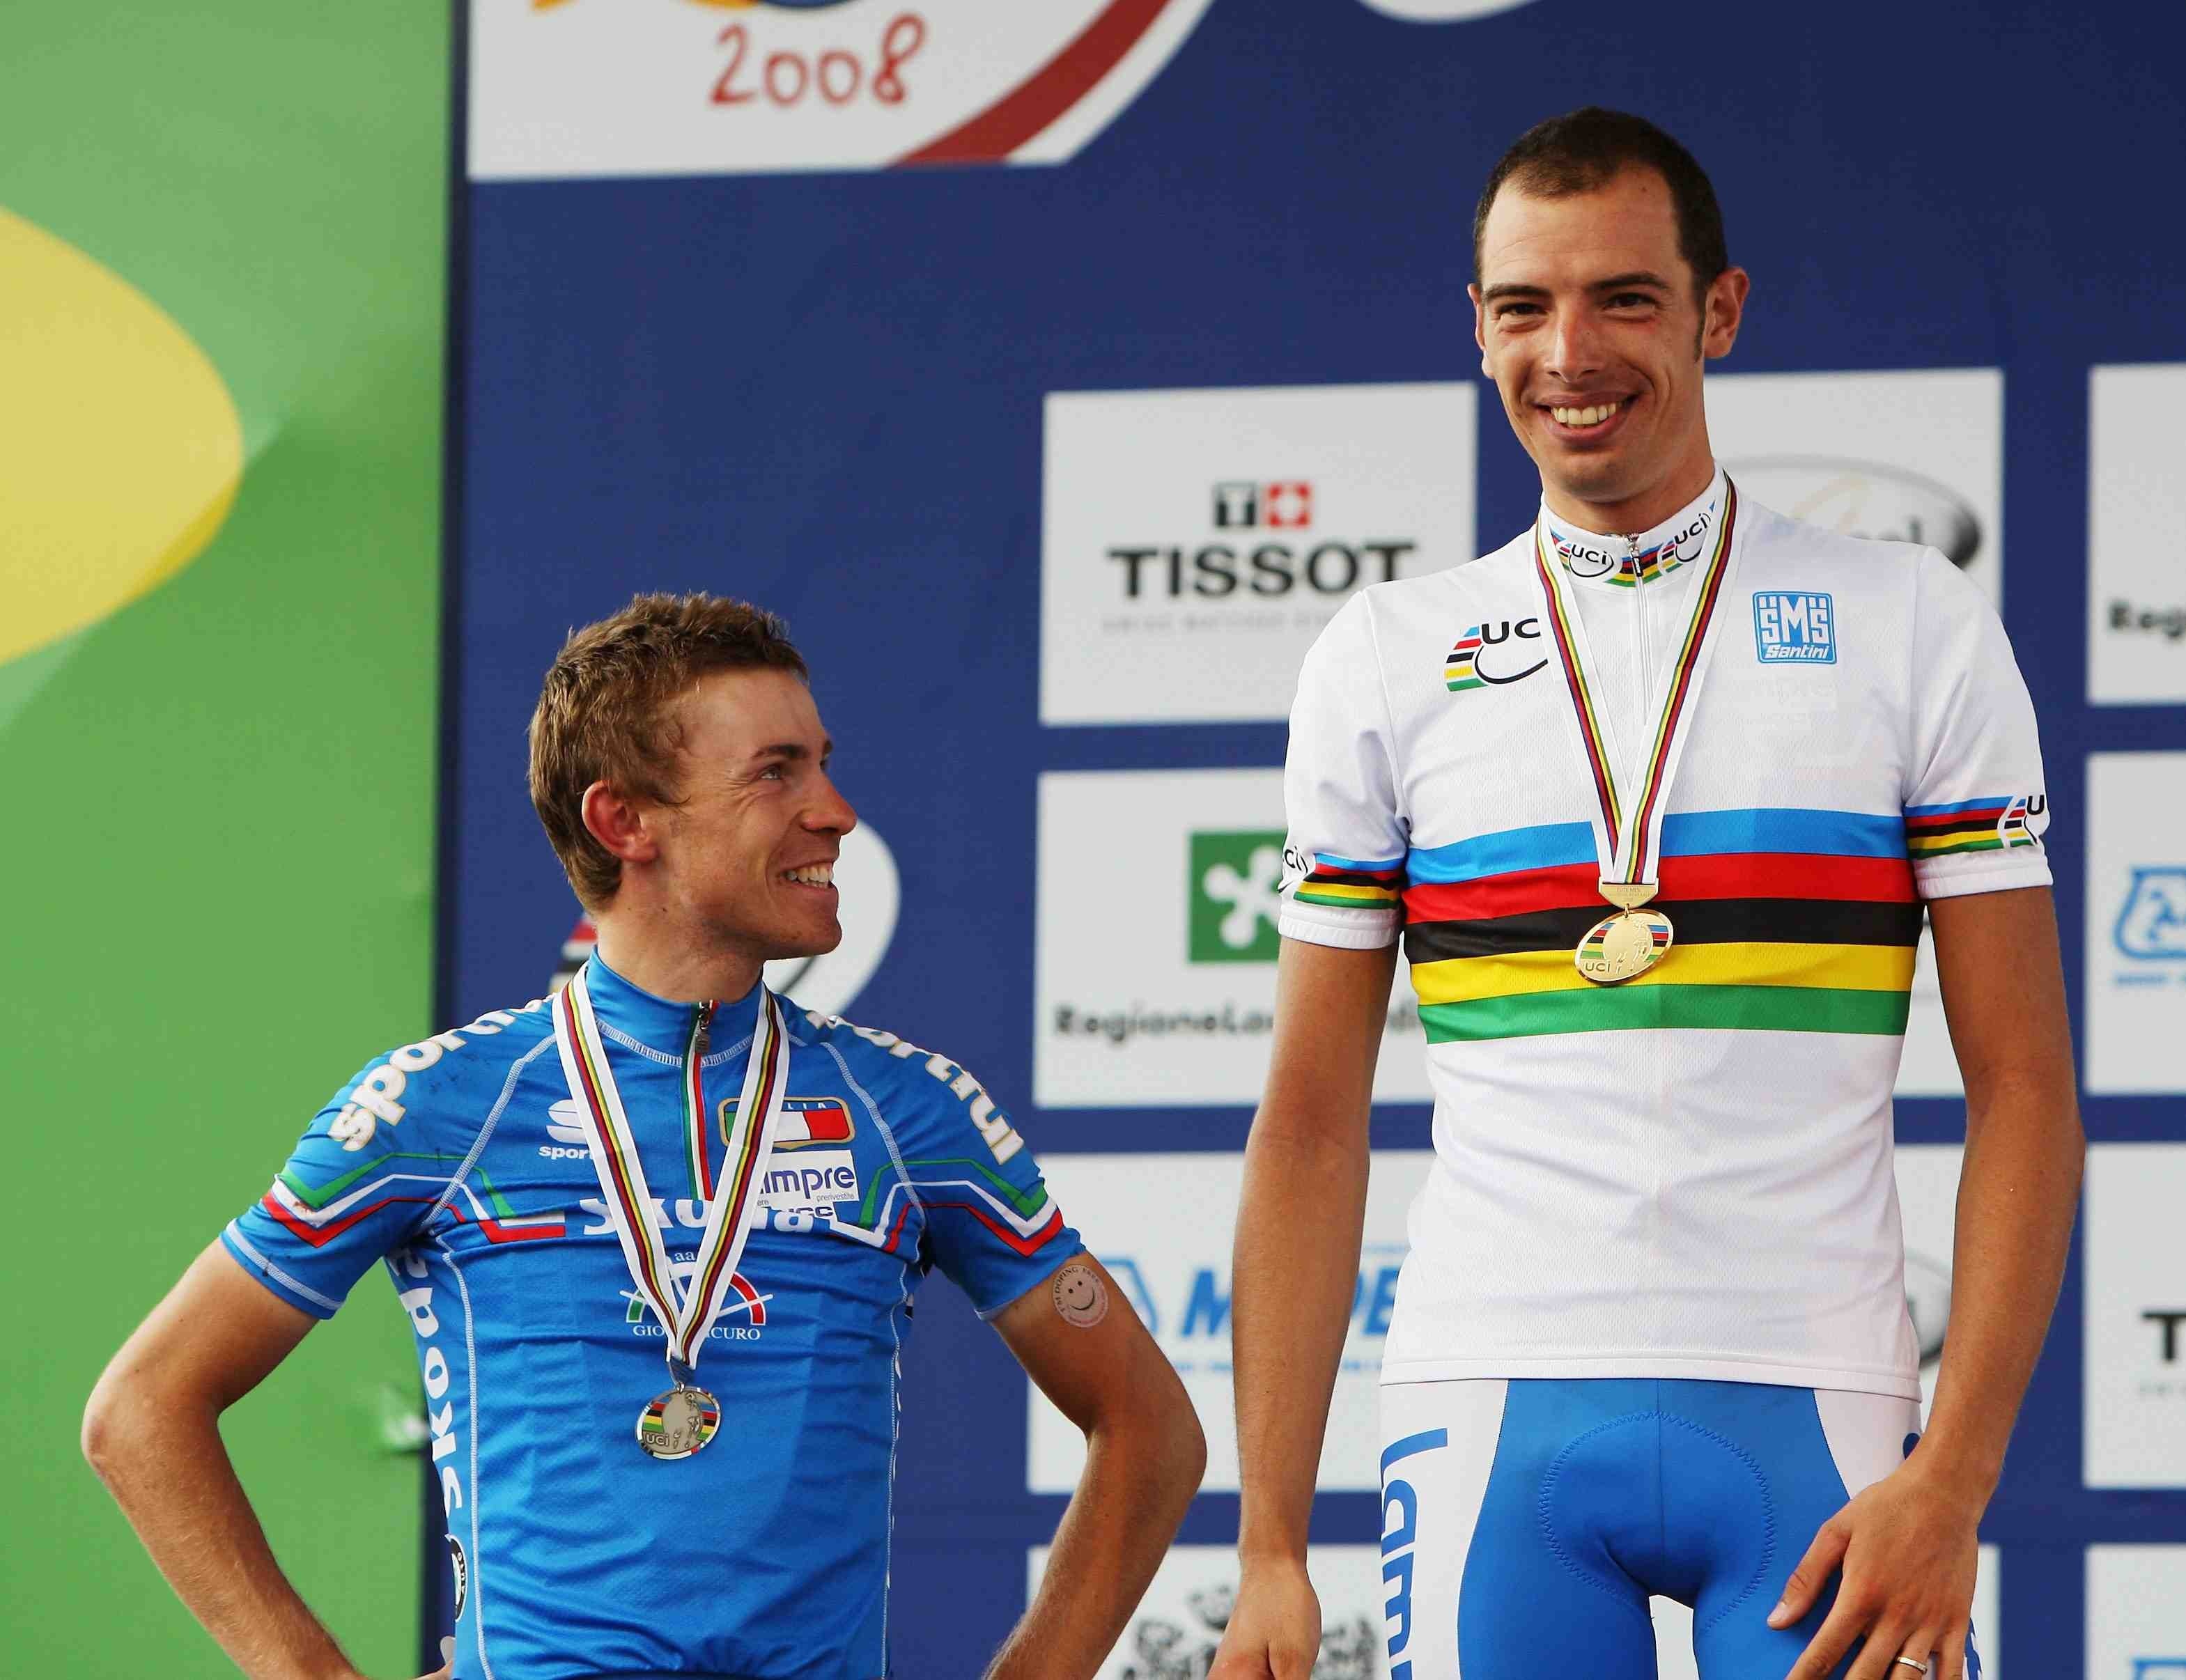 Lampre teammates Damiano Cunego (L) and Alessandro Ballan finished second and first in the 2008 world road race championship.